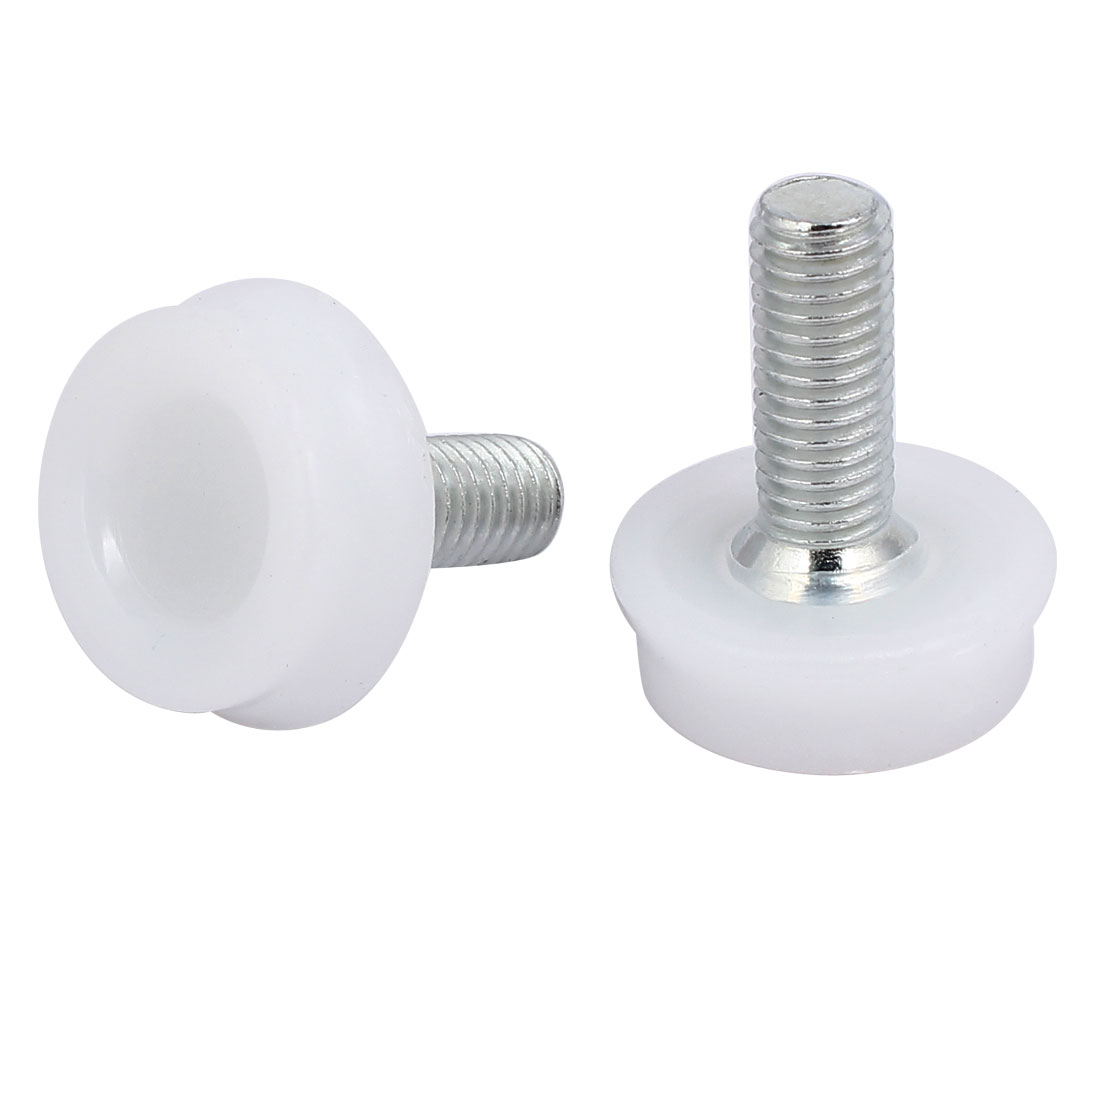 M8x20mm Plastic Base Furniture Glide Leveling Foot White Silver Tone 12pcs - image 1 of 2